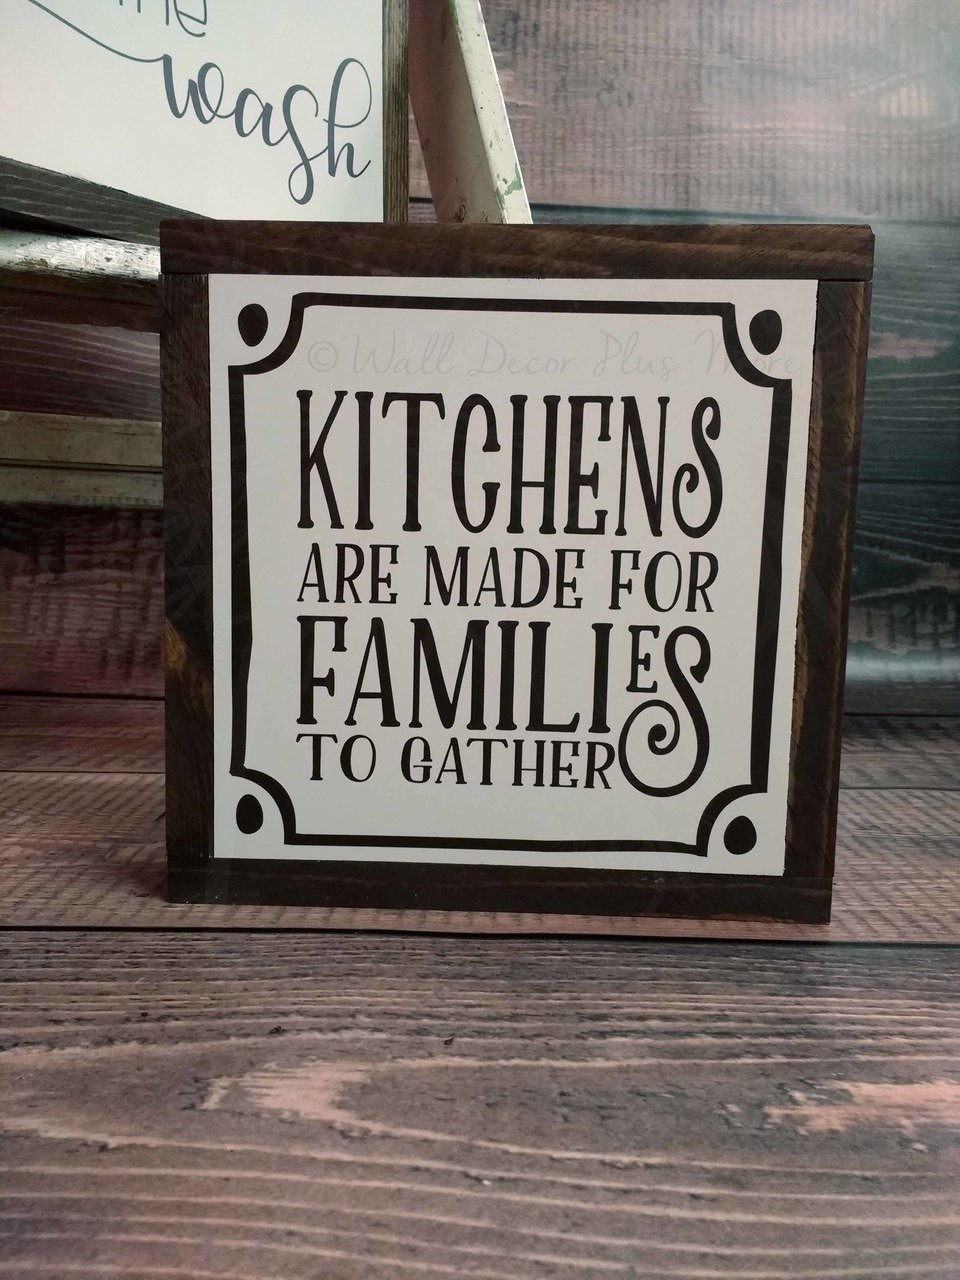 Kitchens Are Made For Families To Gather Wood Sign Metal Inspiring Words Hanging Wall Art 3 Choices Decor Plus More